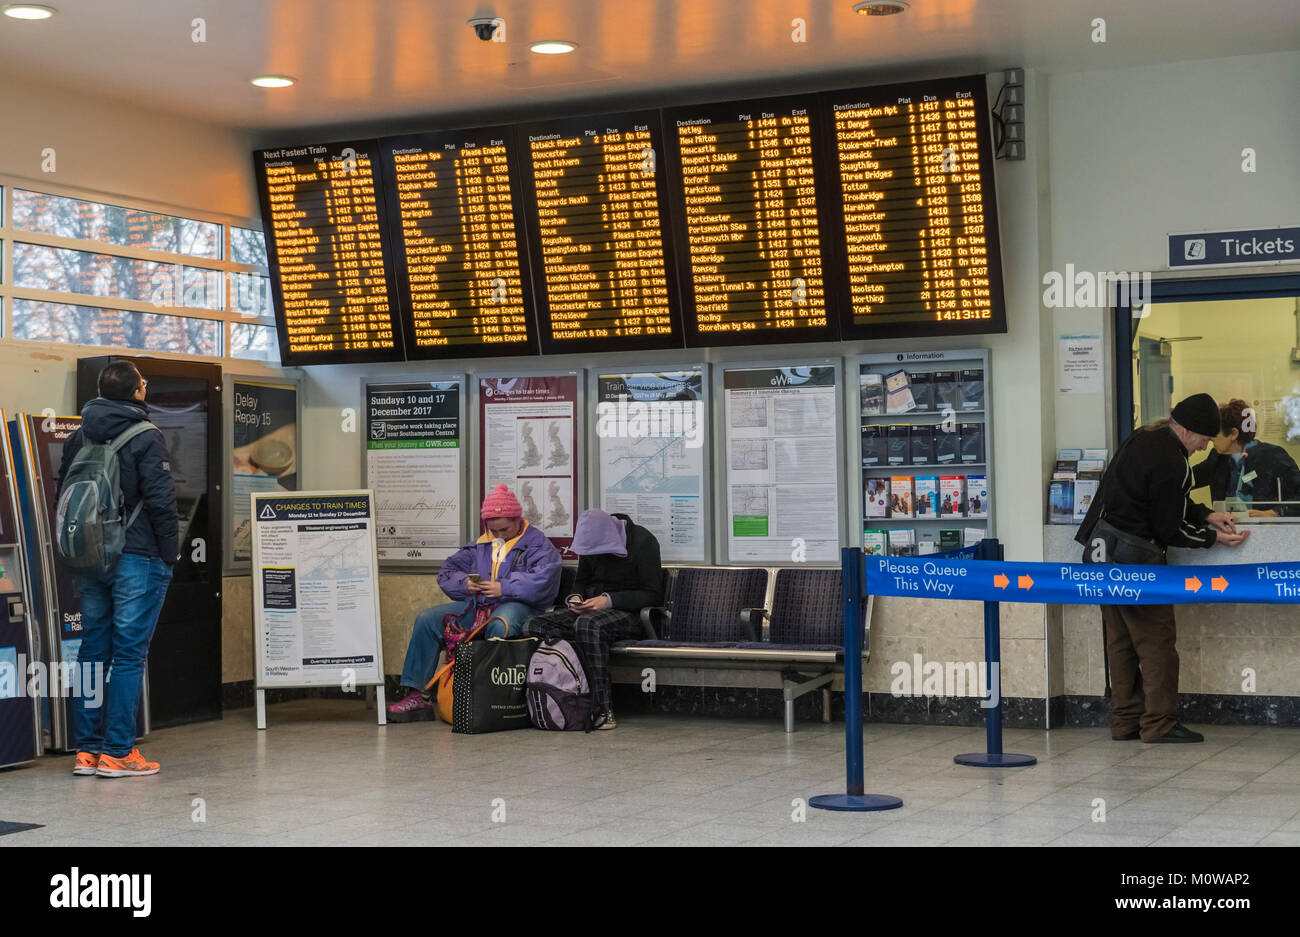 Ticket office and train departure times board in a British railway station in England, UK. - Stock Image